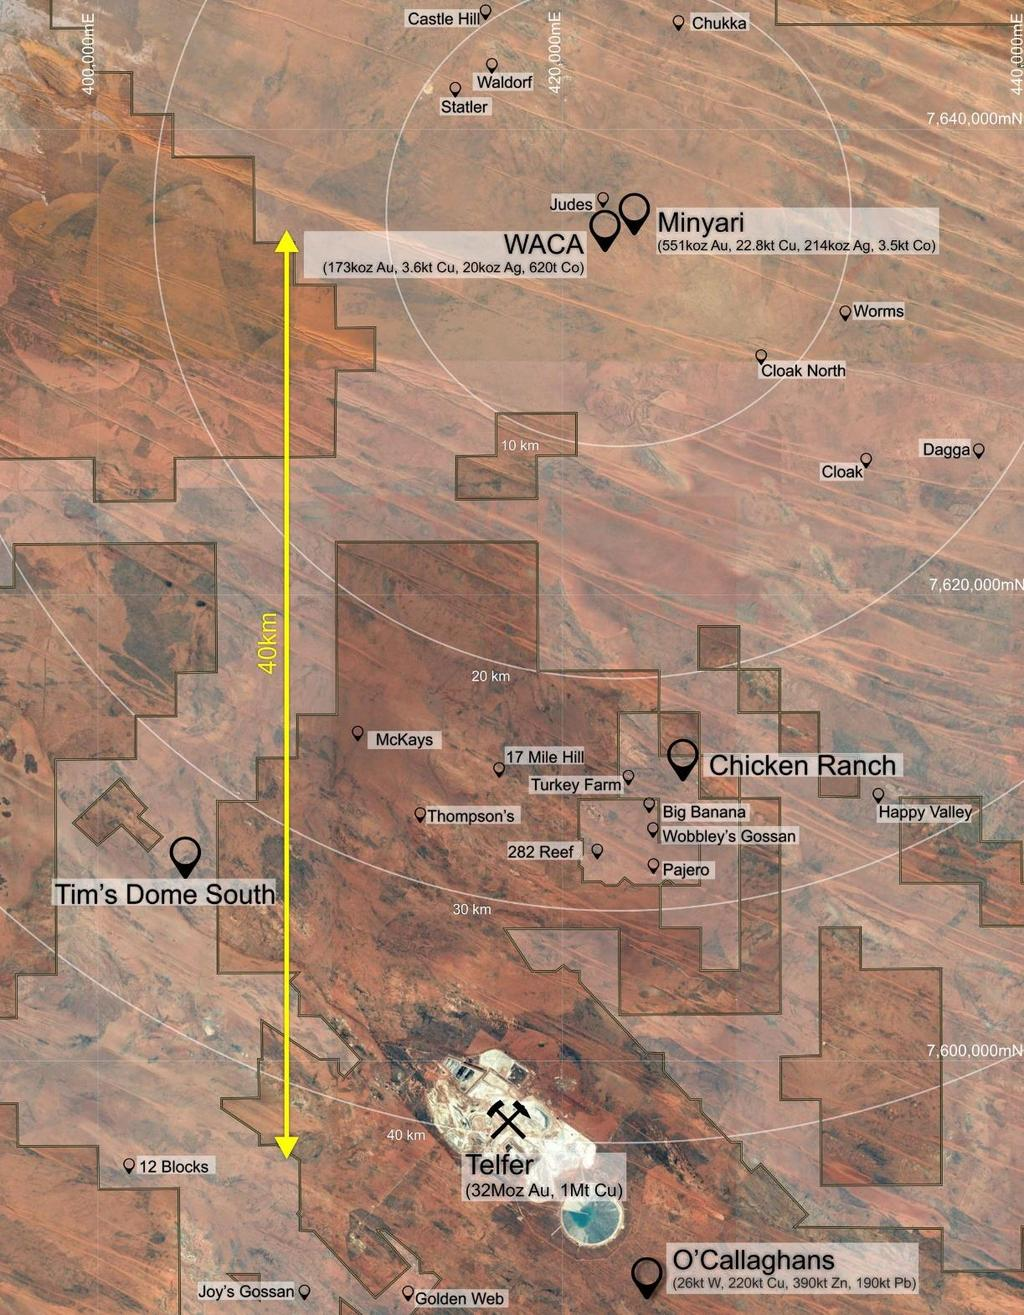 Tim s Dome, situated 35km southwest of the Minyari-WACA deposits and only 12km from the Telfer Mine, has significant gold mineralisation from near surface extending over a strike length in excess of